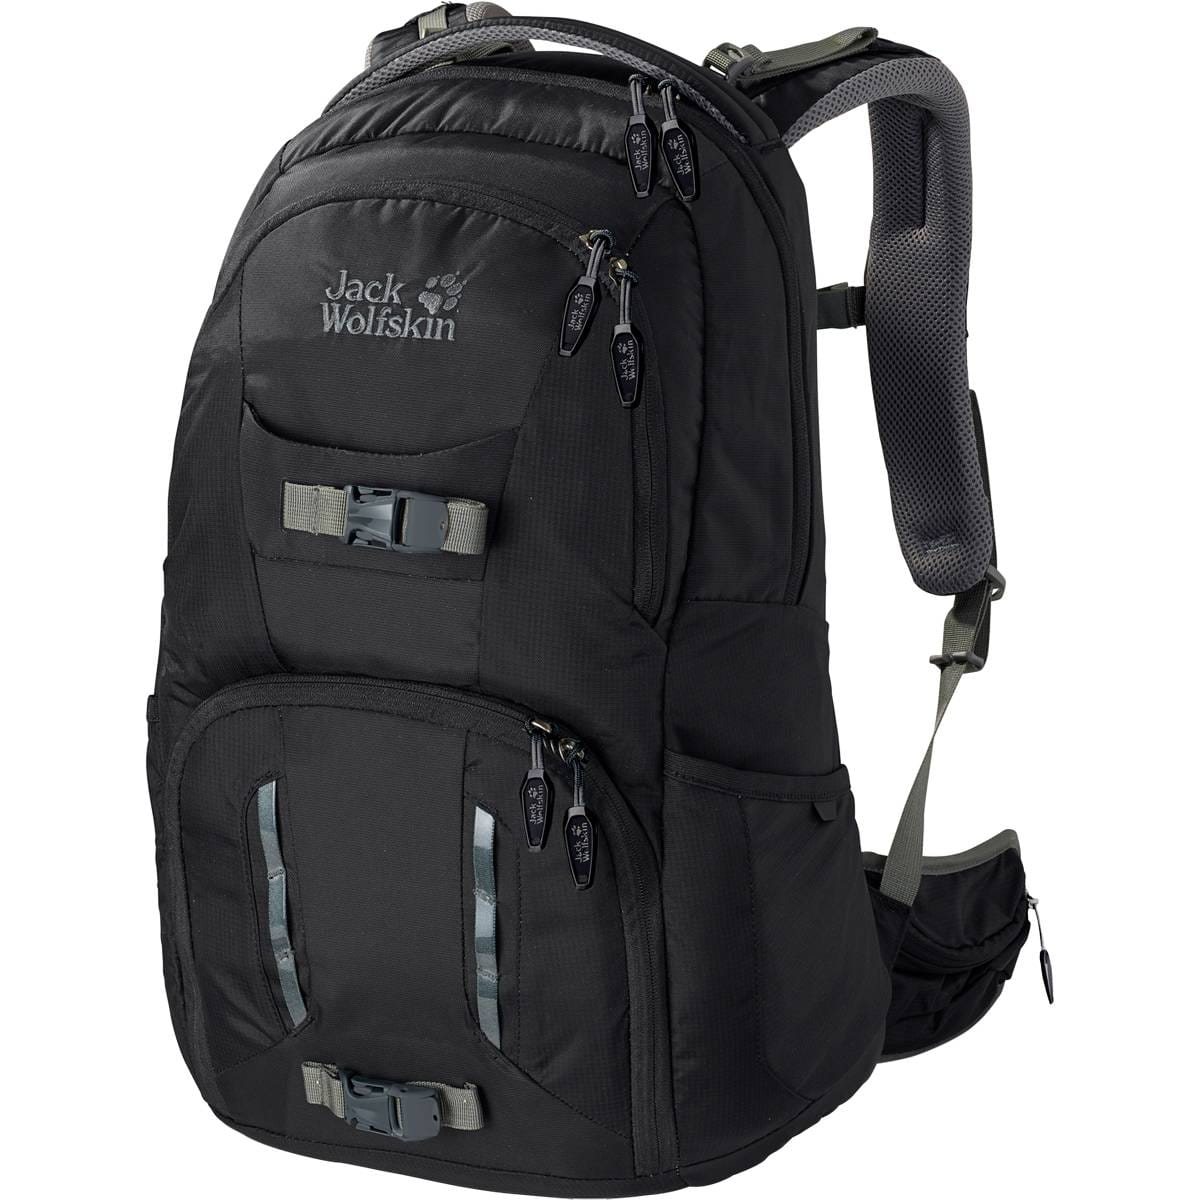 Jack Wolfskin ACS Photo Pack - Foto Rucksack black - Bild 1